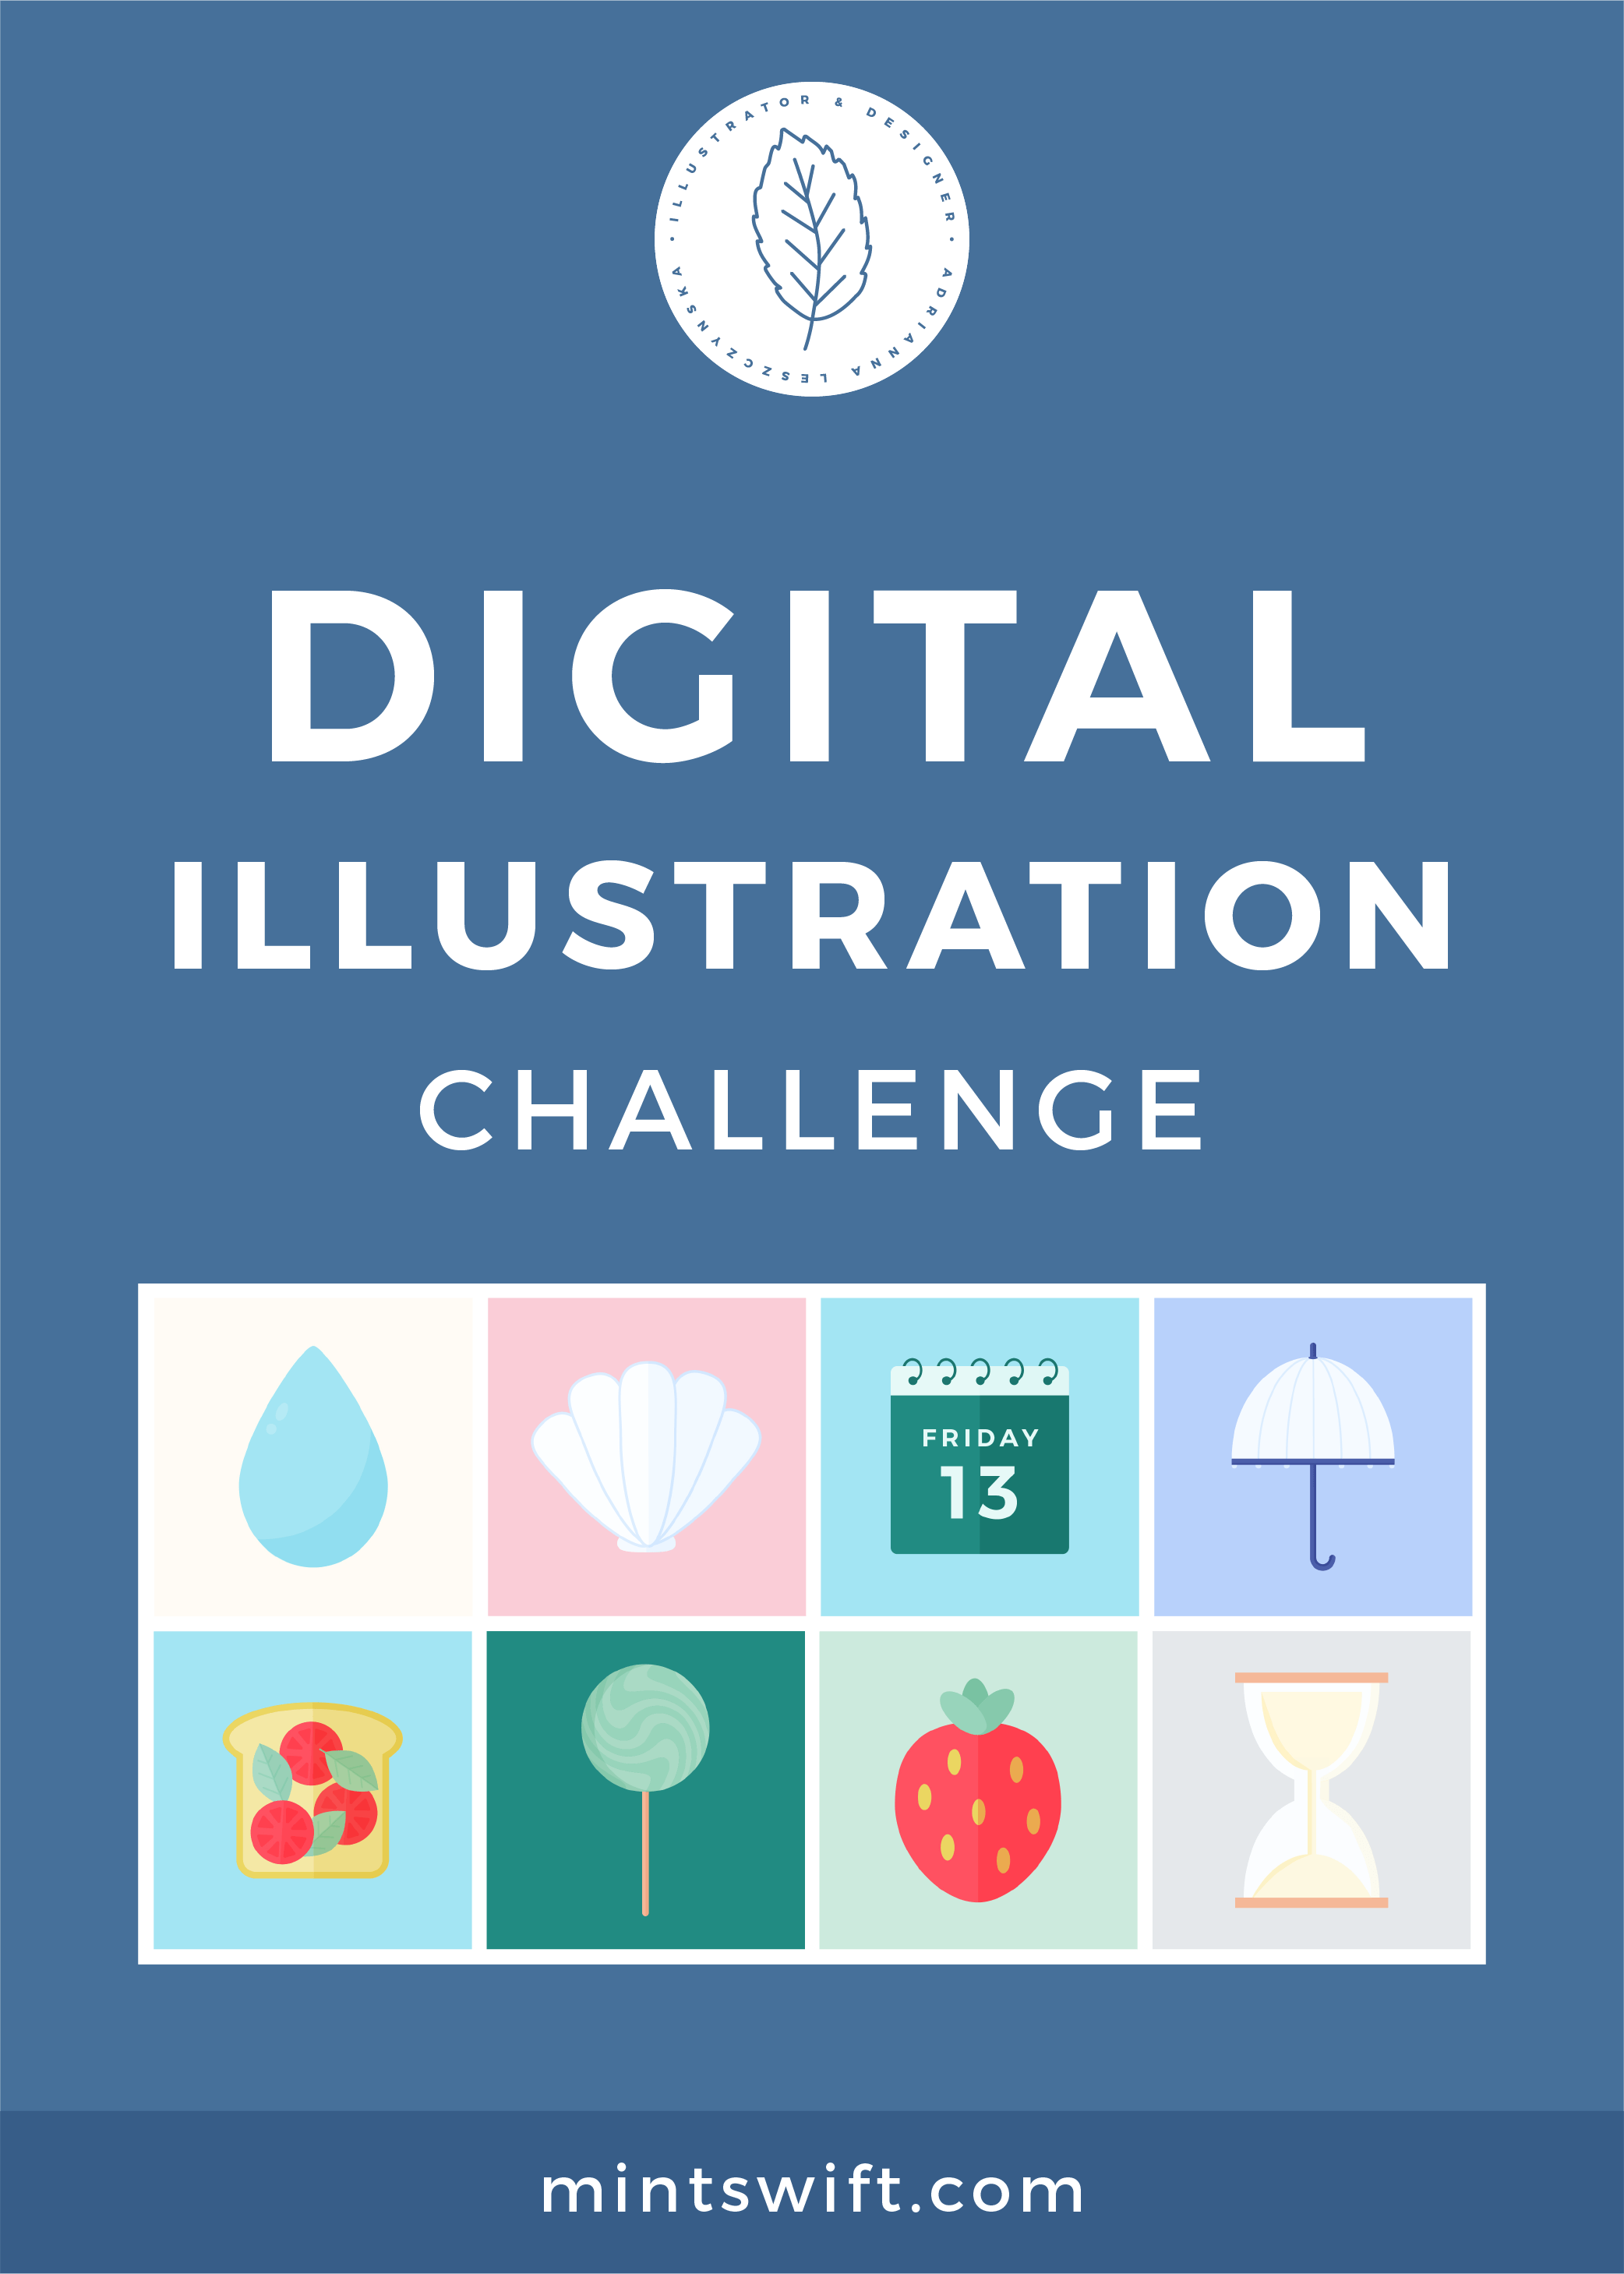 Digital Illustration Challenge